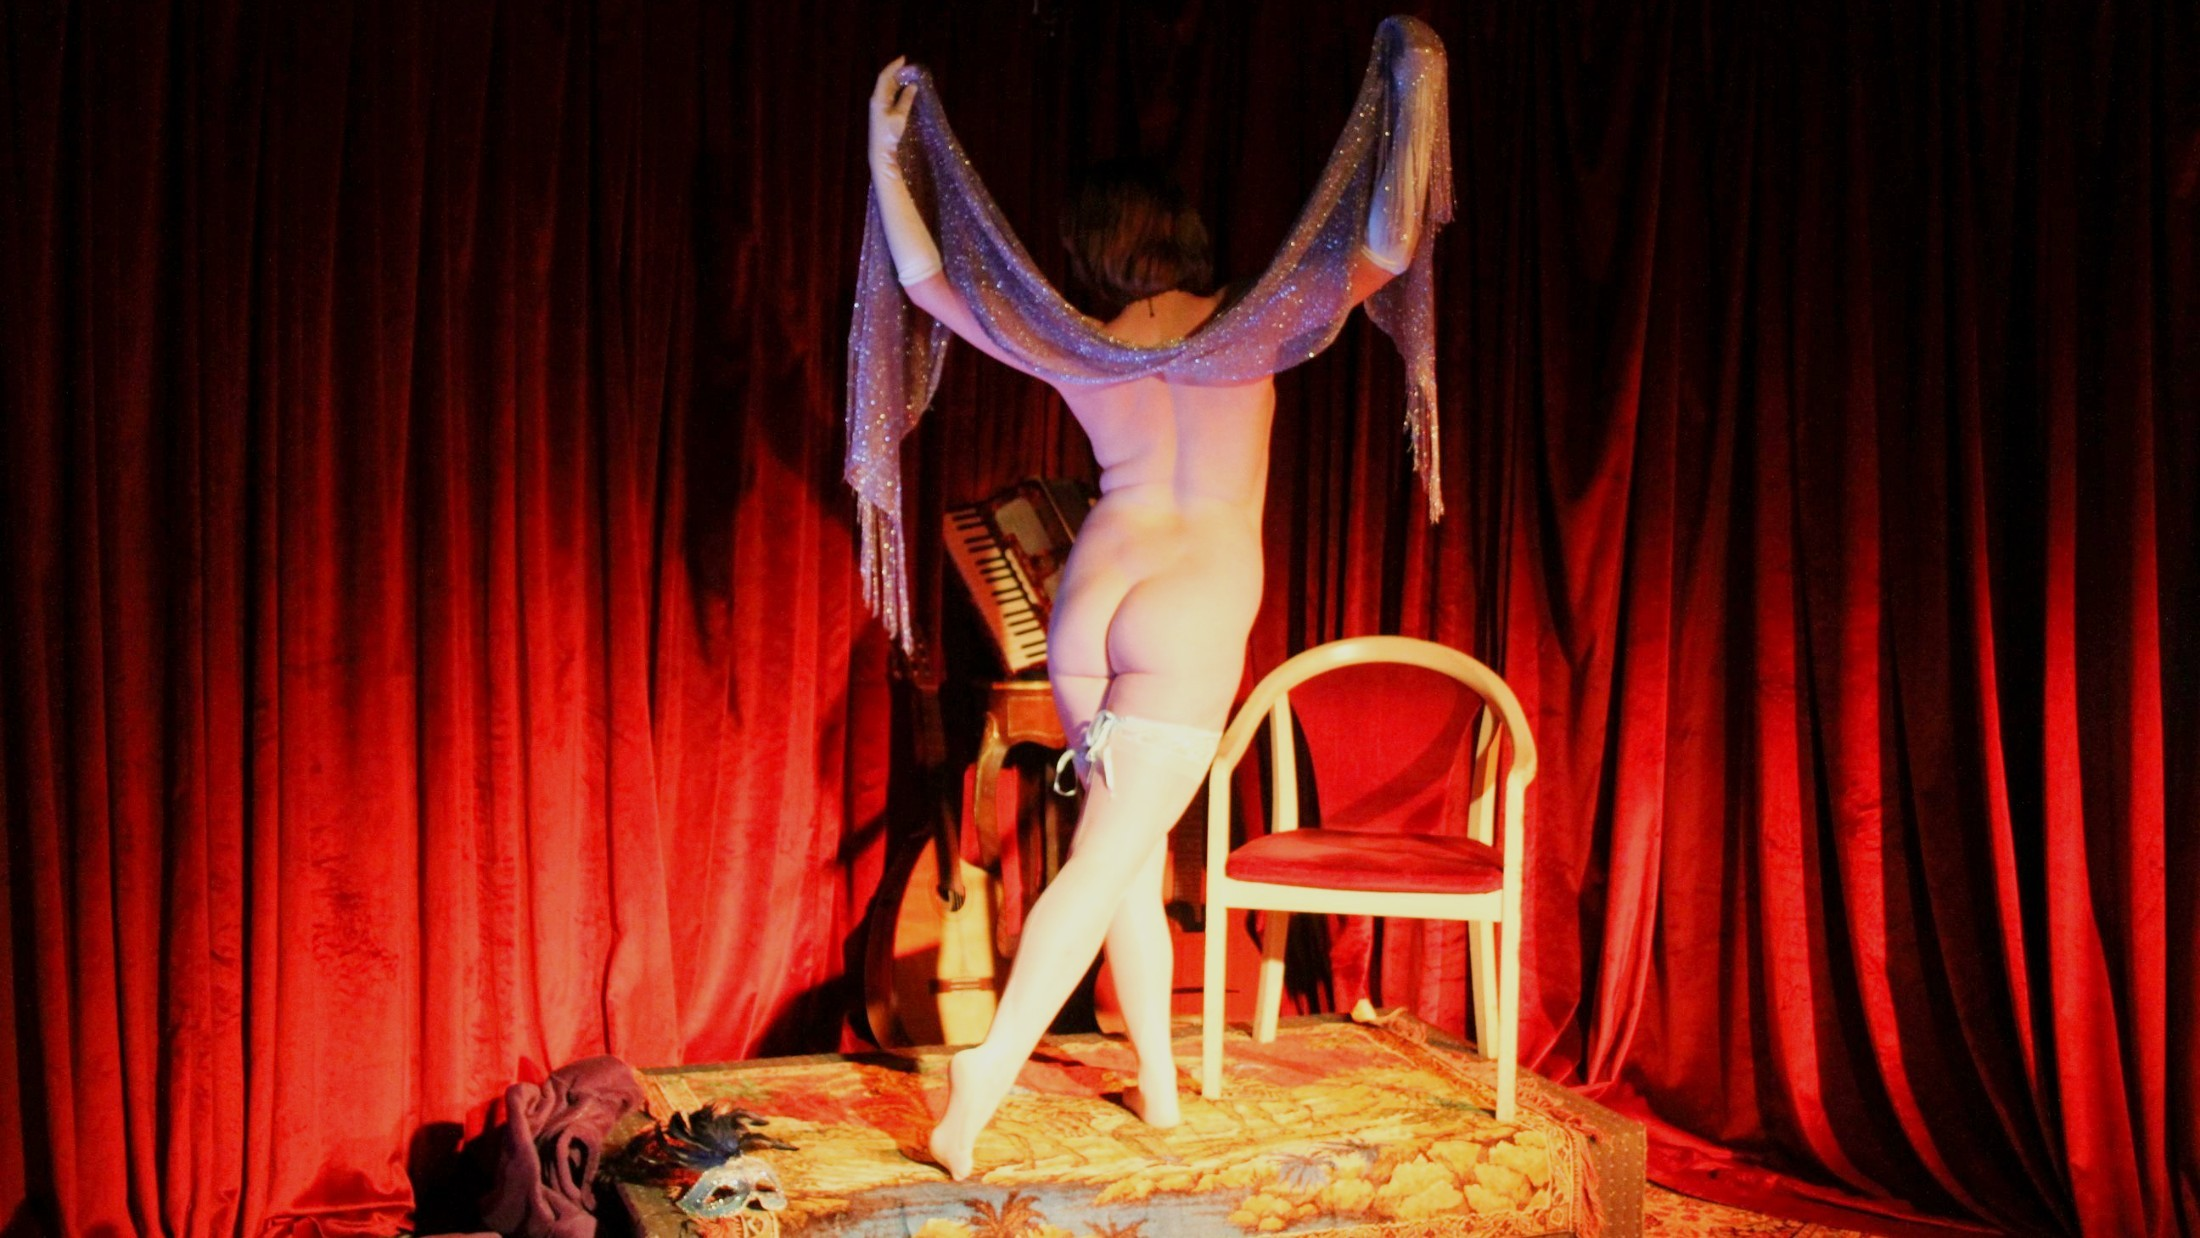 Nude model poses, she faces away from the camera holding a sparkly shawl in the air.